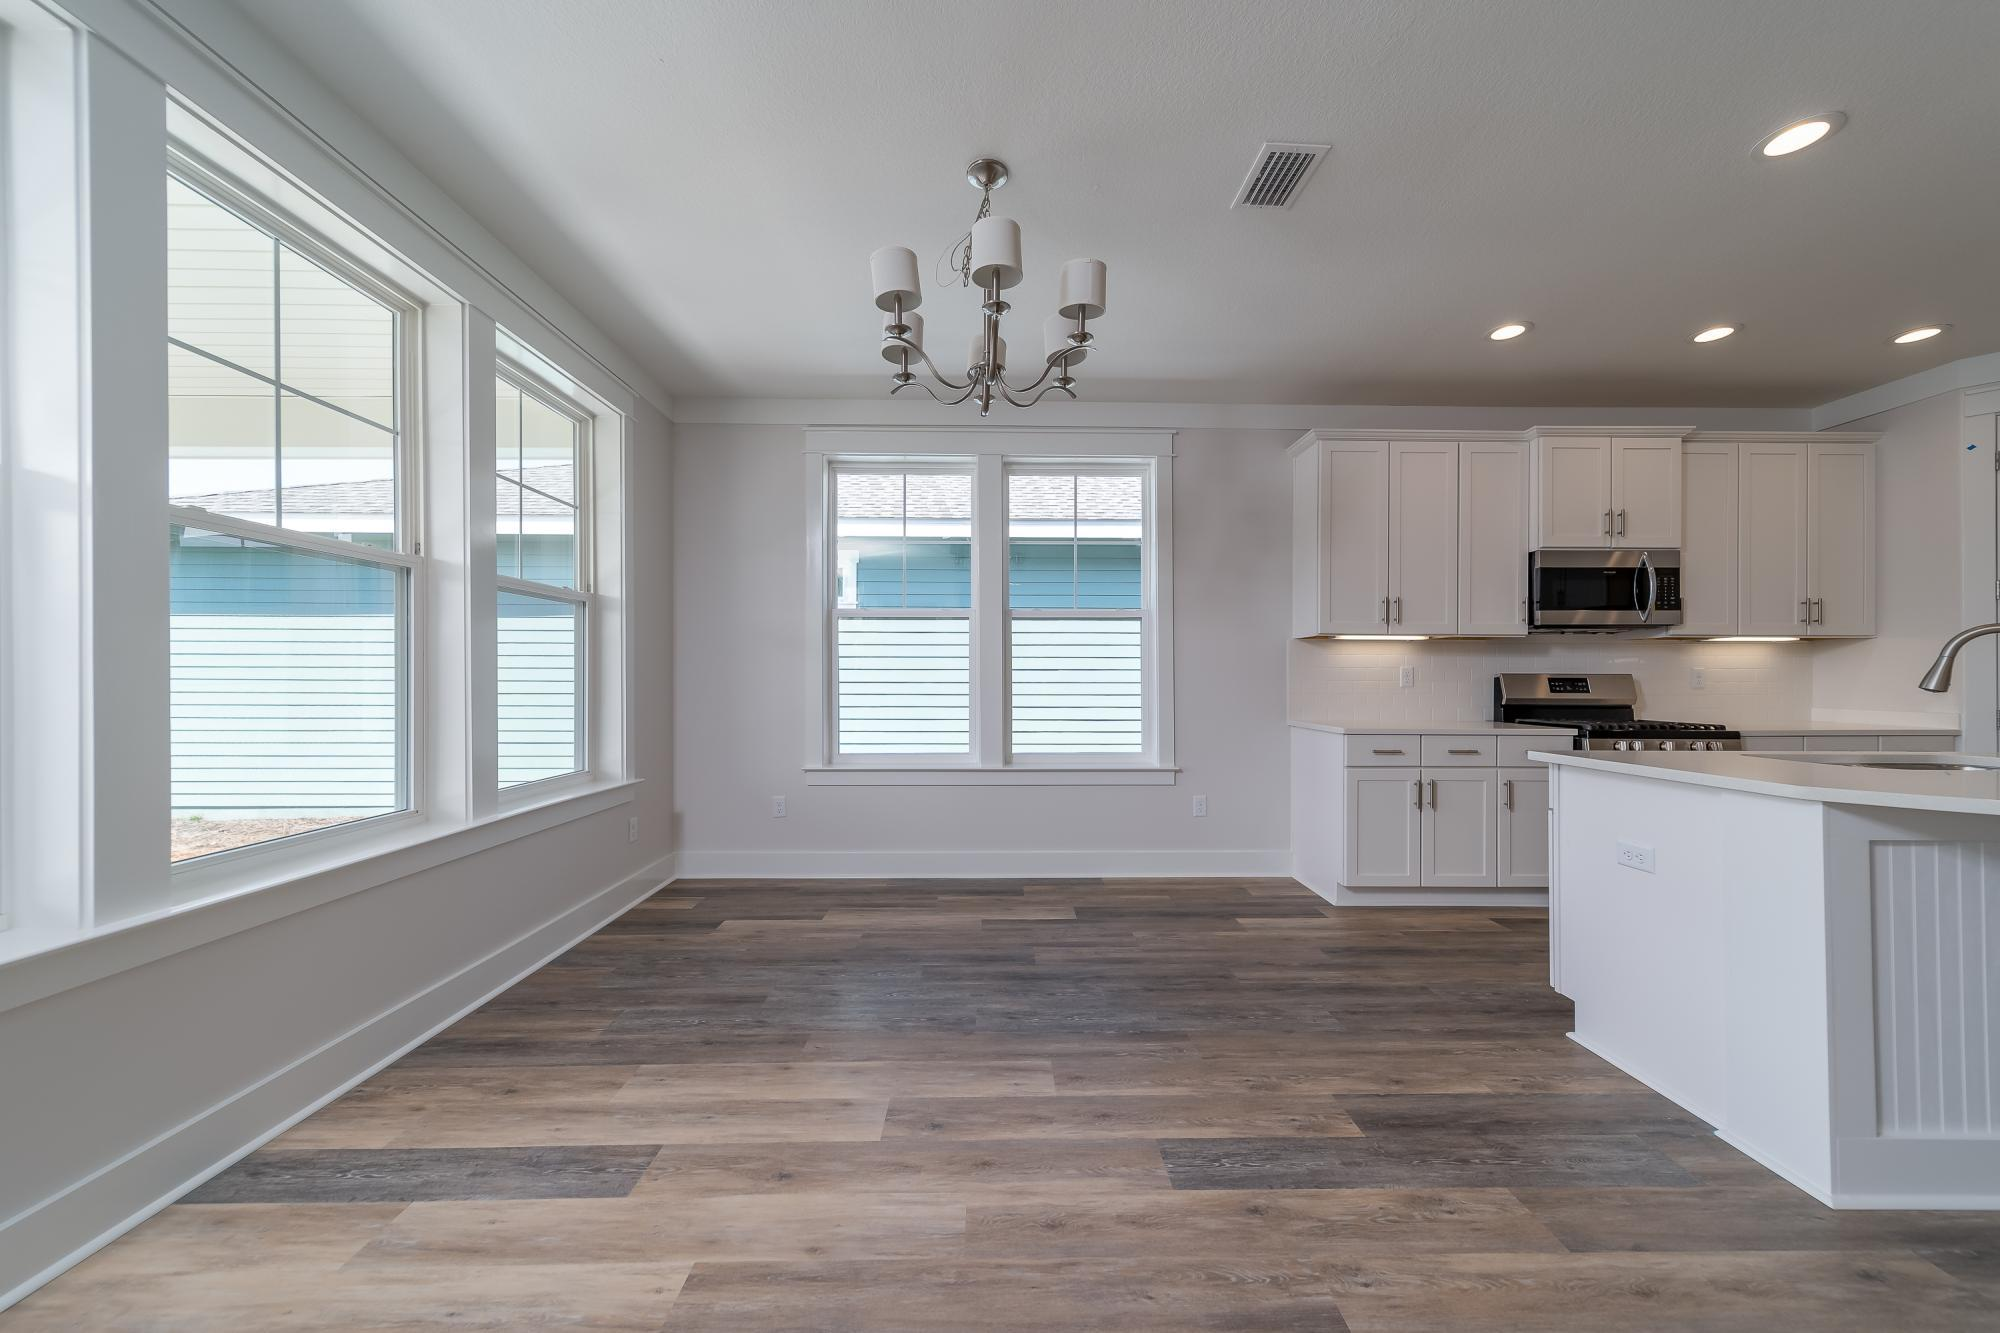 Kitchen featured in the Anna Maria By Samuel Taylor Homes in Panama City, FL